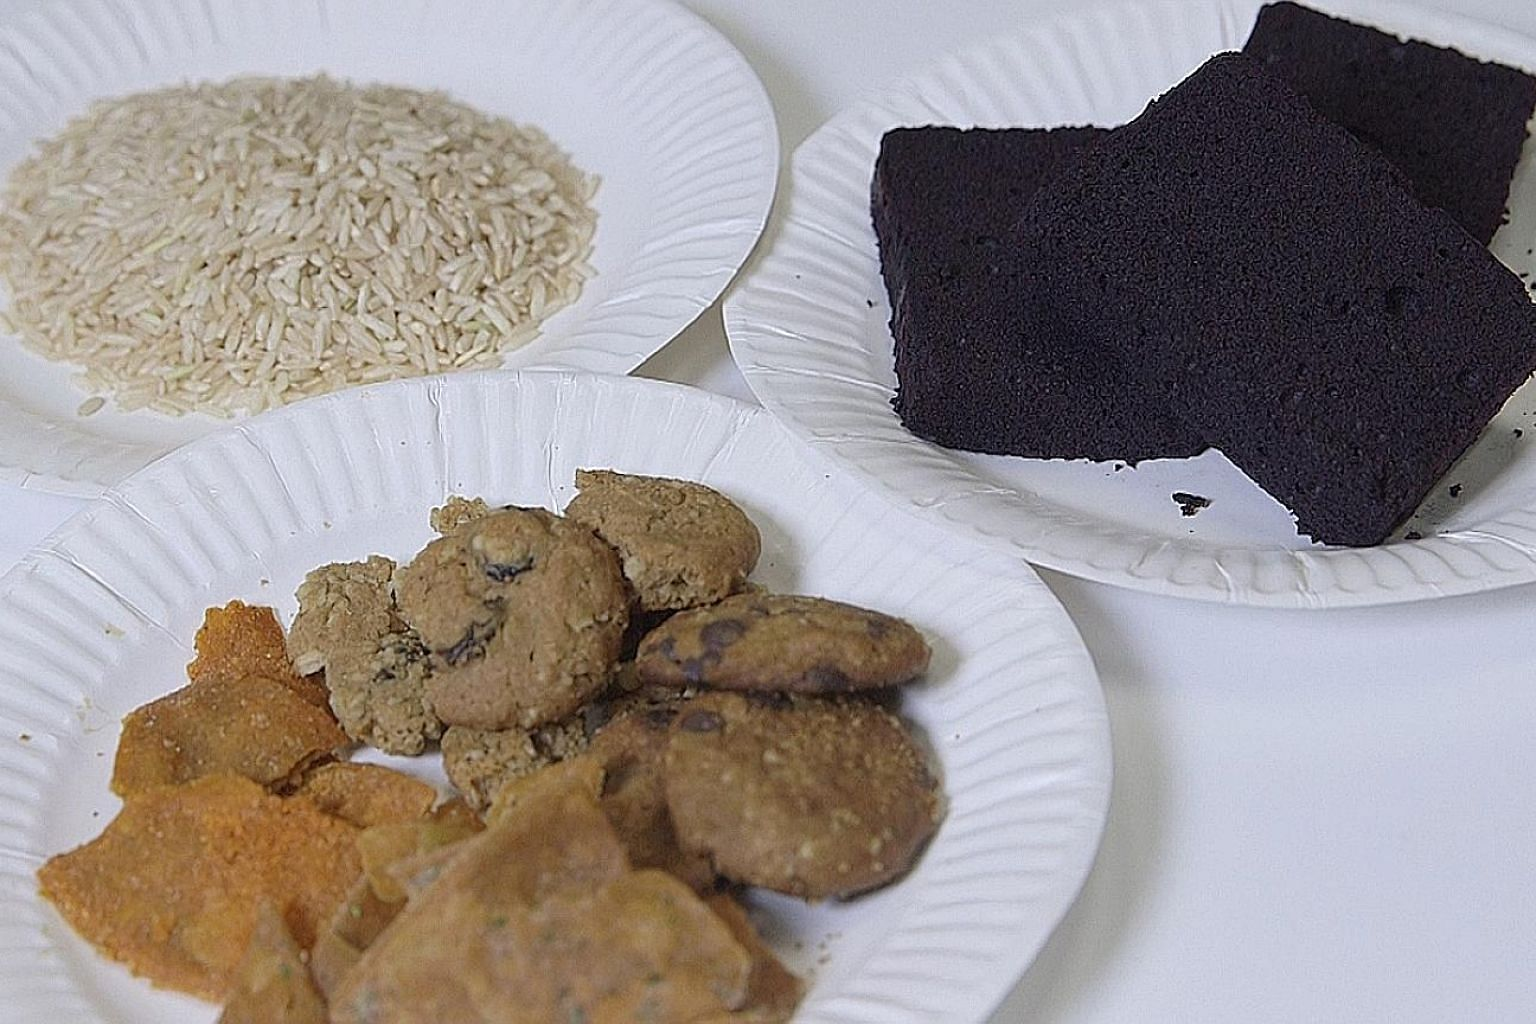 Brown rice from The Little Rice Company, tortilla chips made from cricket flour and brownies that release sugar slowly.